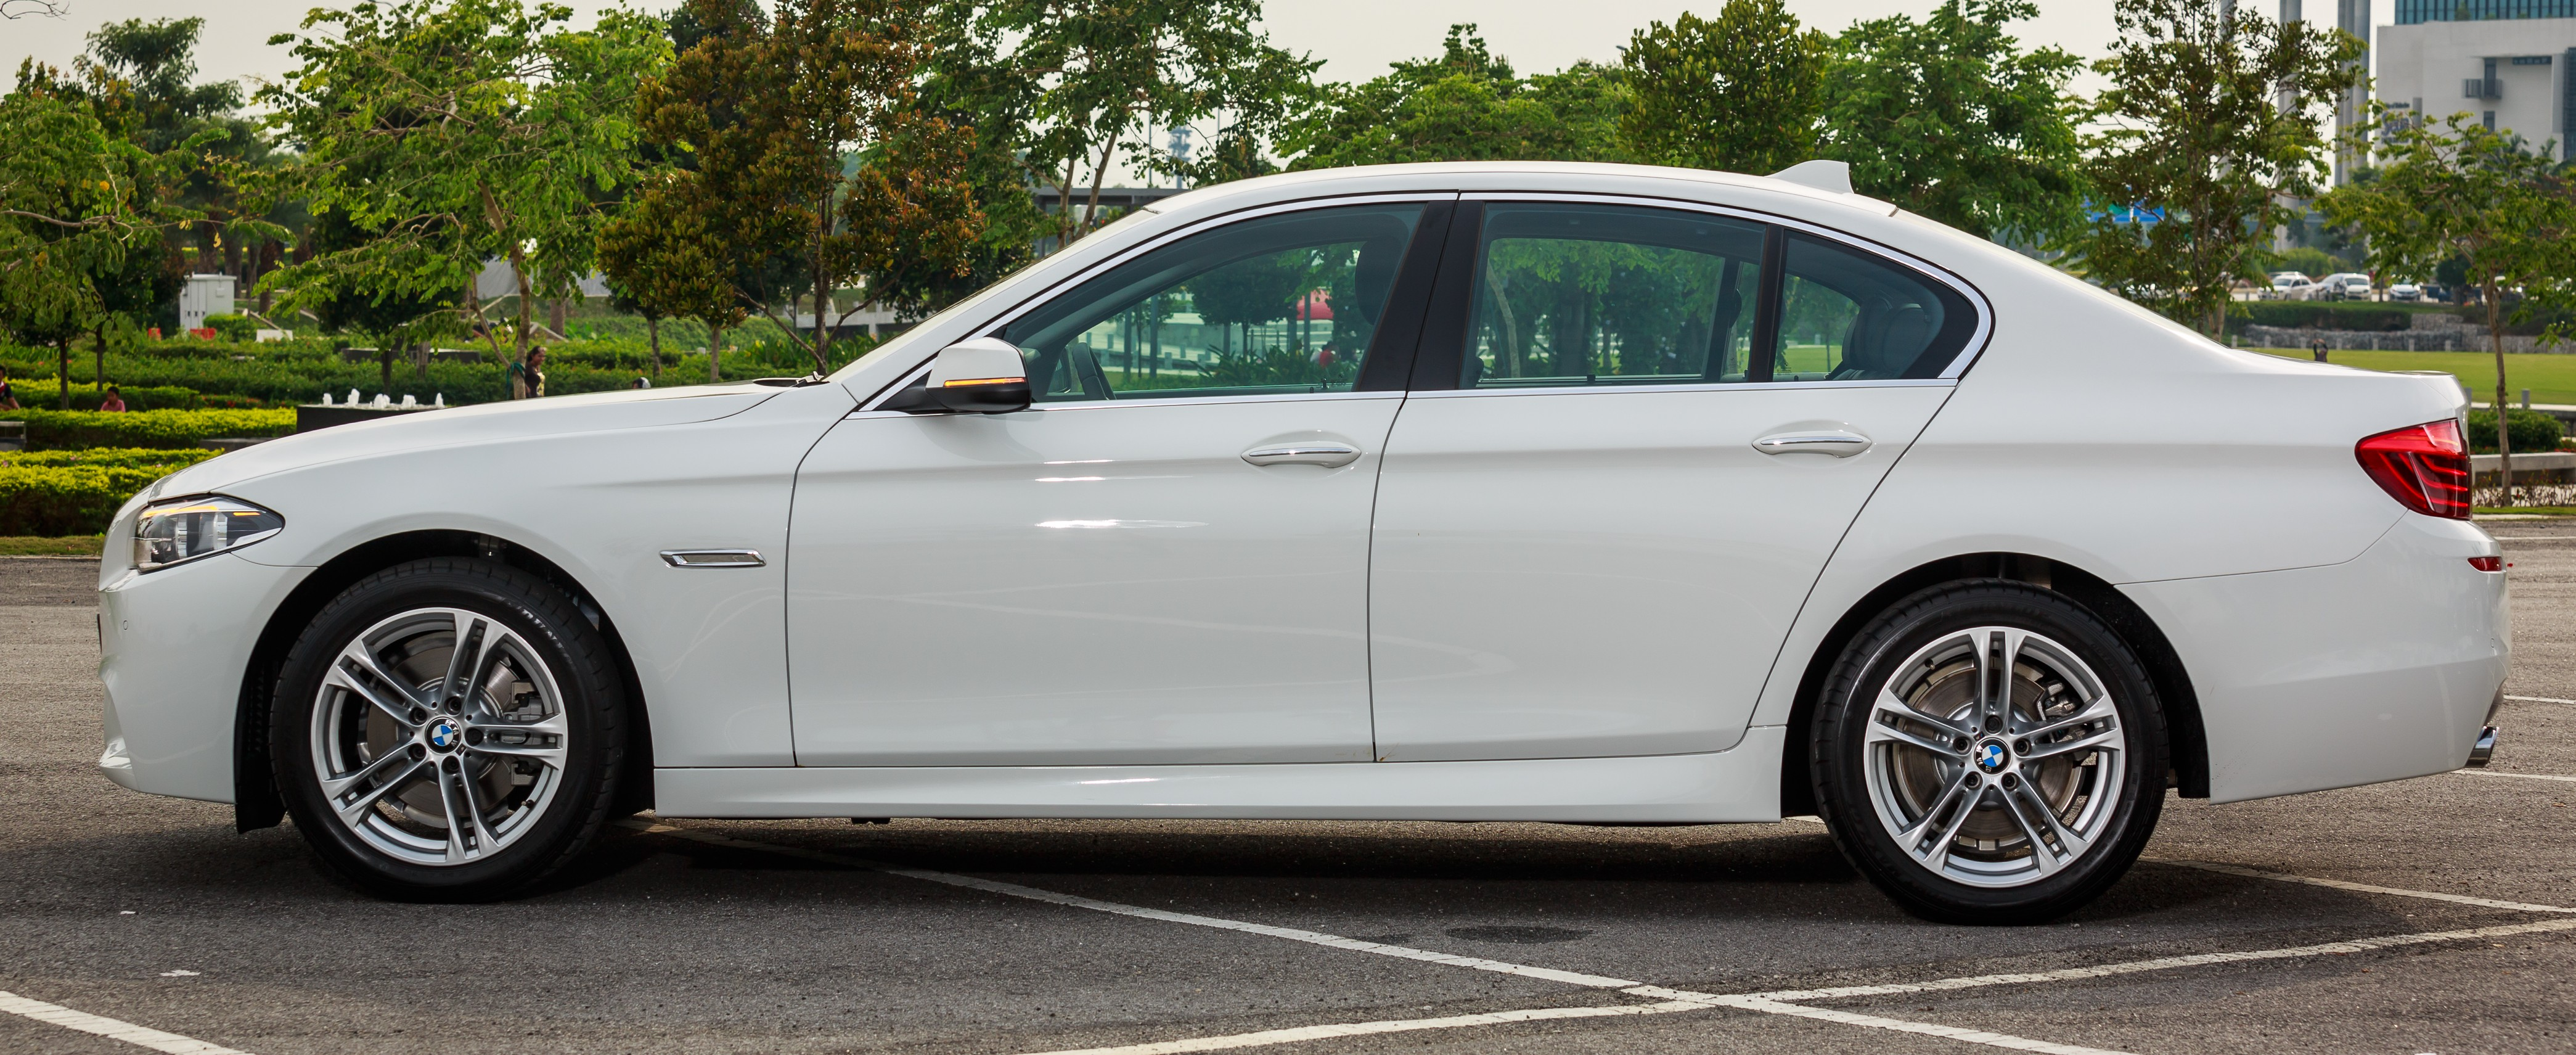 Bmw 520d Sport Introduced In Malaysia 50 Units Image 316428